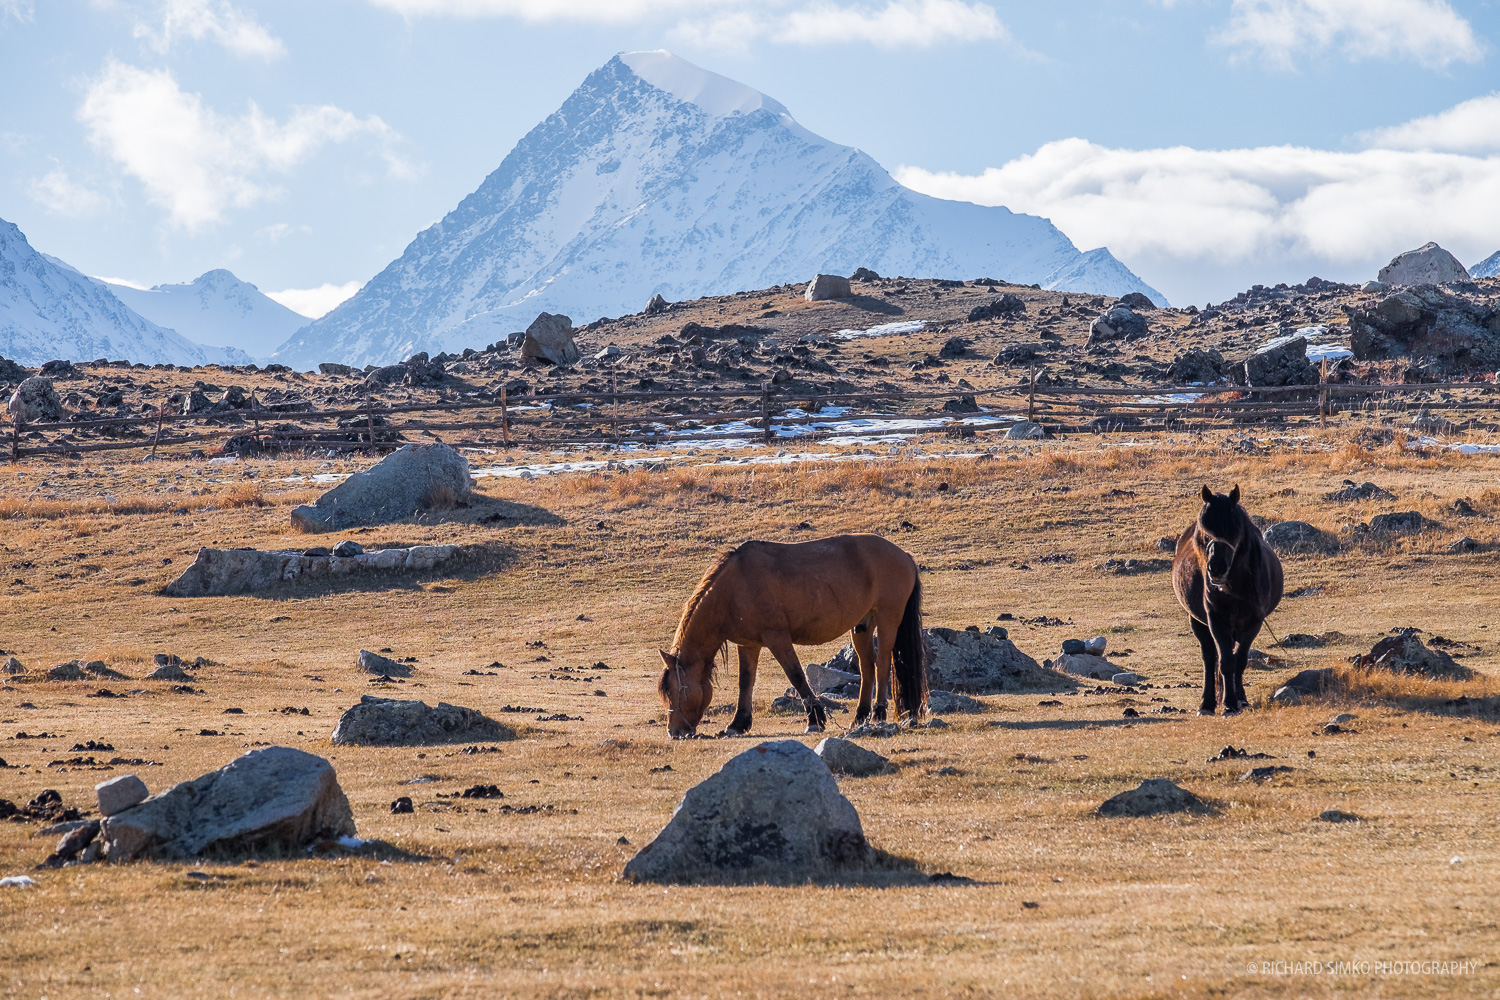 Horsed feeding on dry yellow grass around the camp under the watchful sight of mighty Khuiten peak.